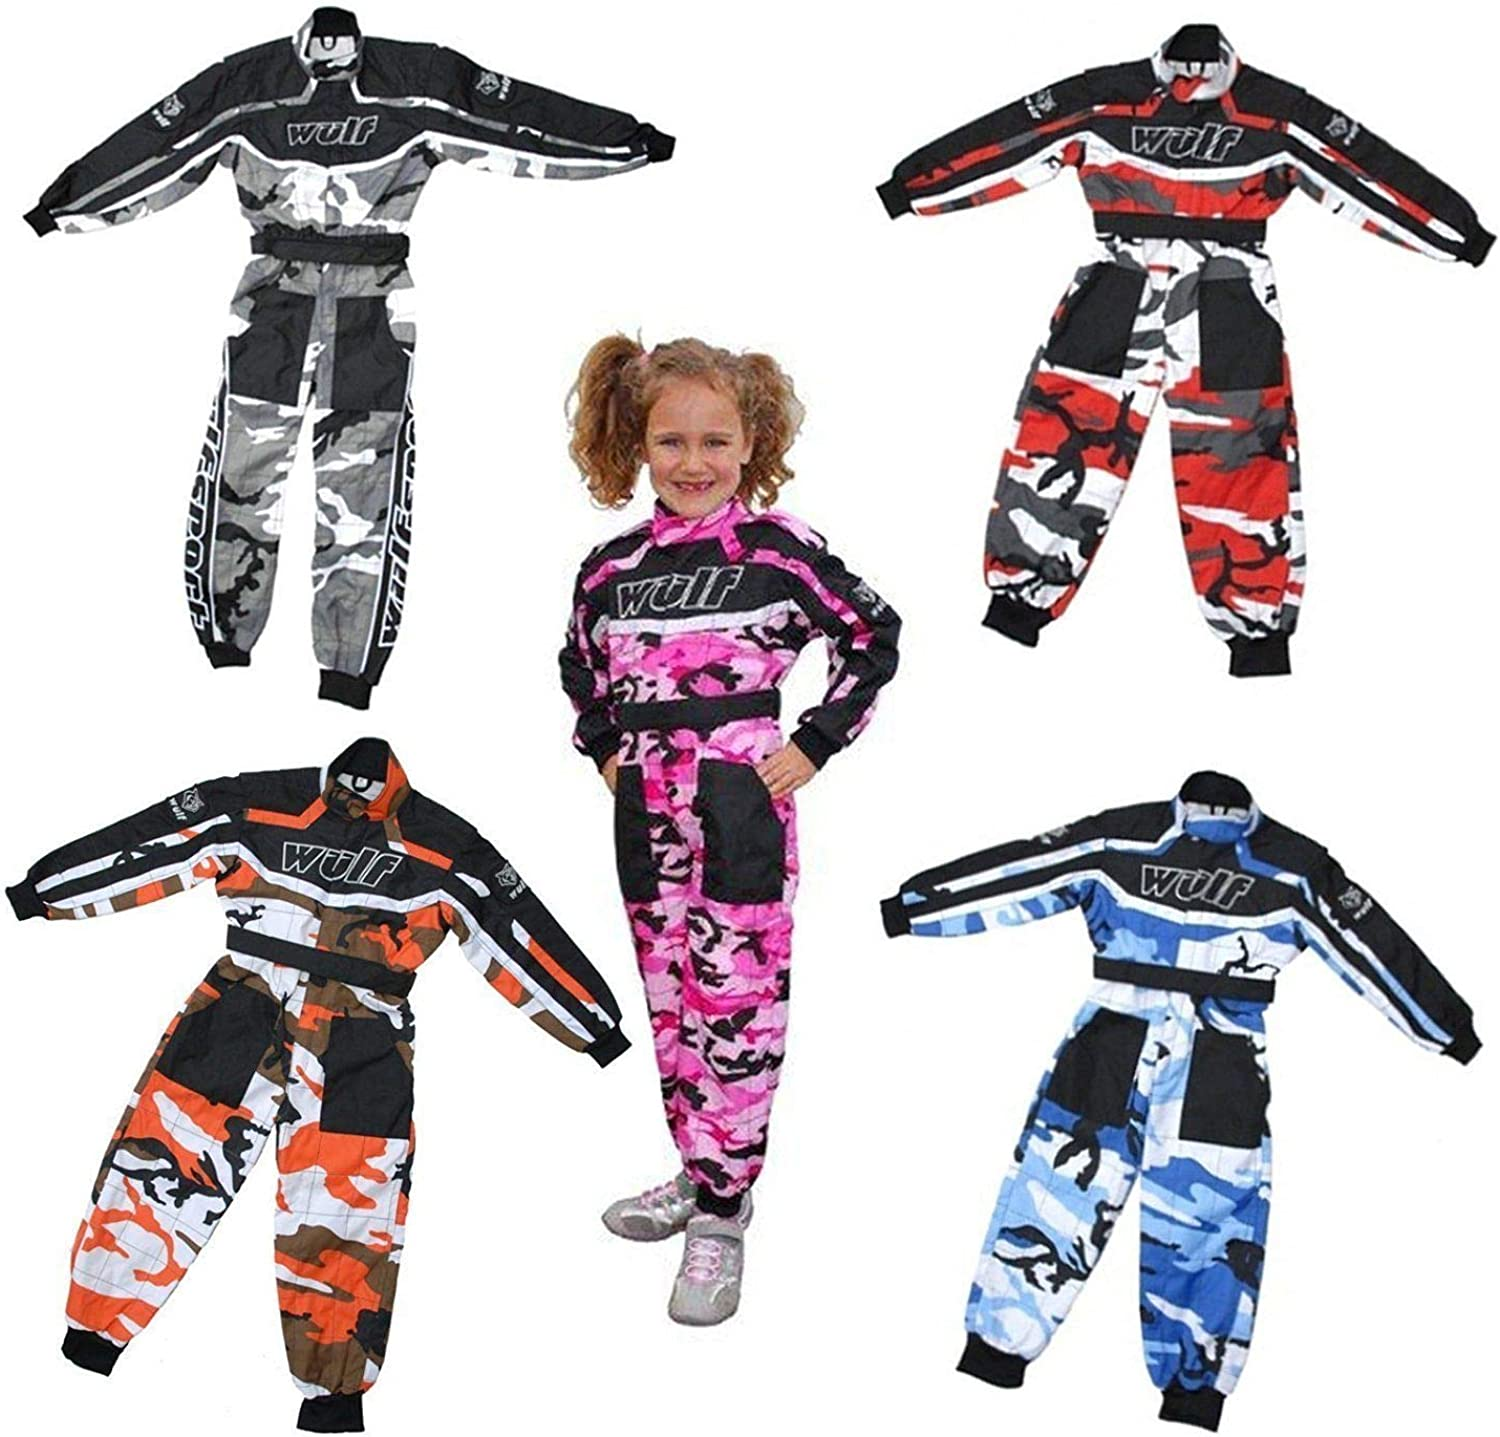 NEW AGE 11-13 WULFSPORT OVERALLS RACE SUIT MOTOCROSS QUAD GO KARTING WULF YOUTH